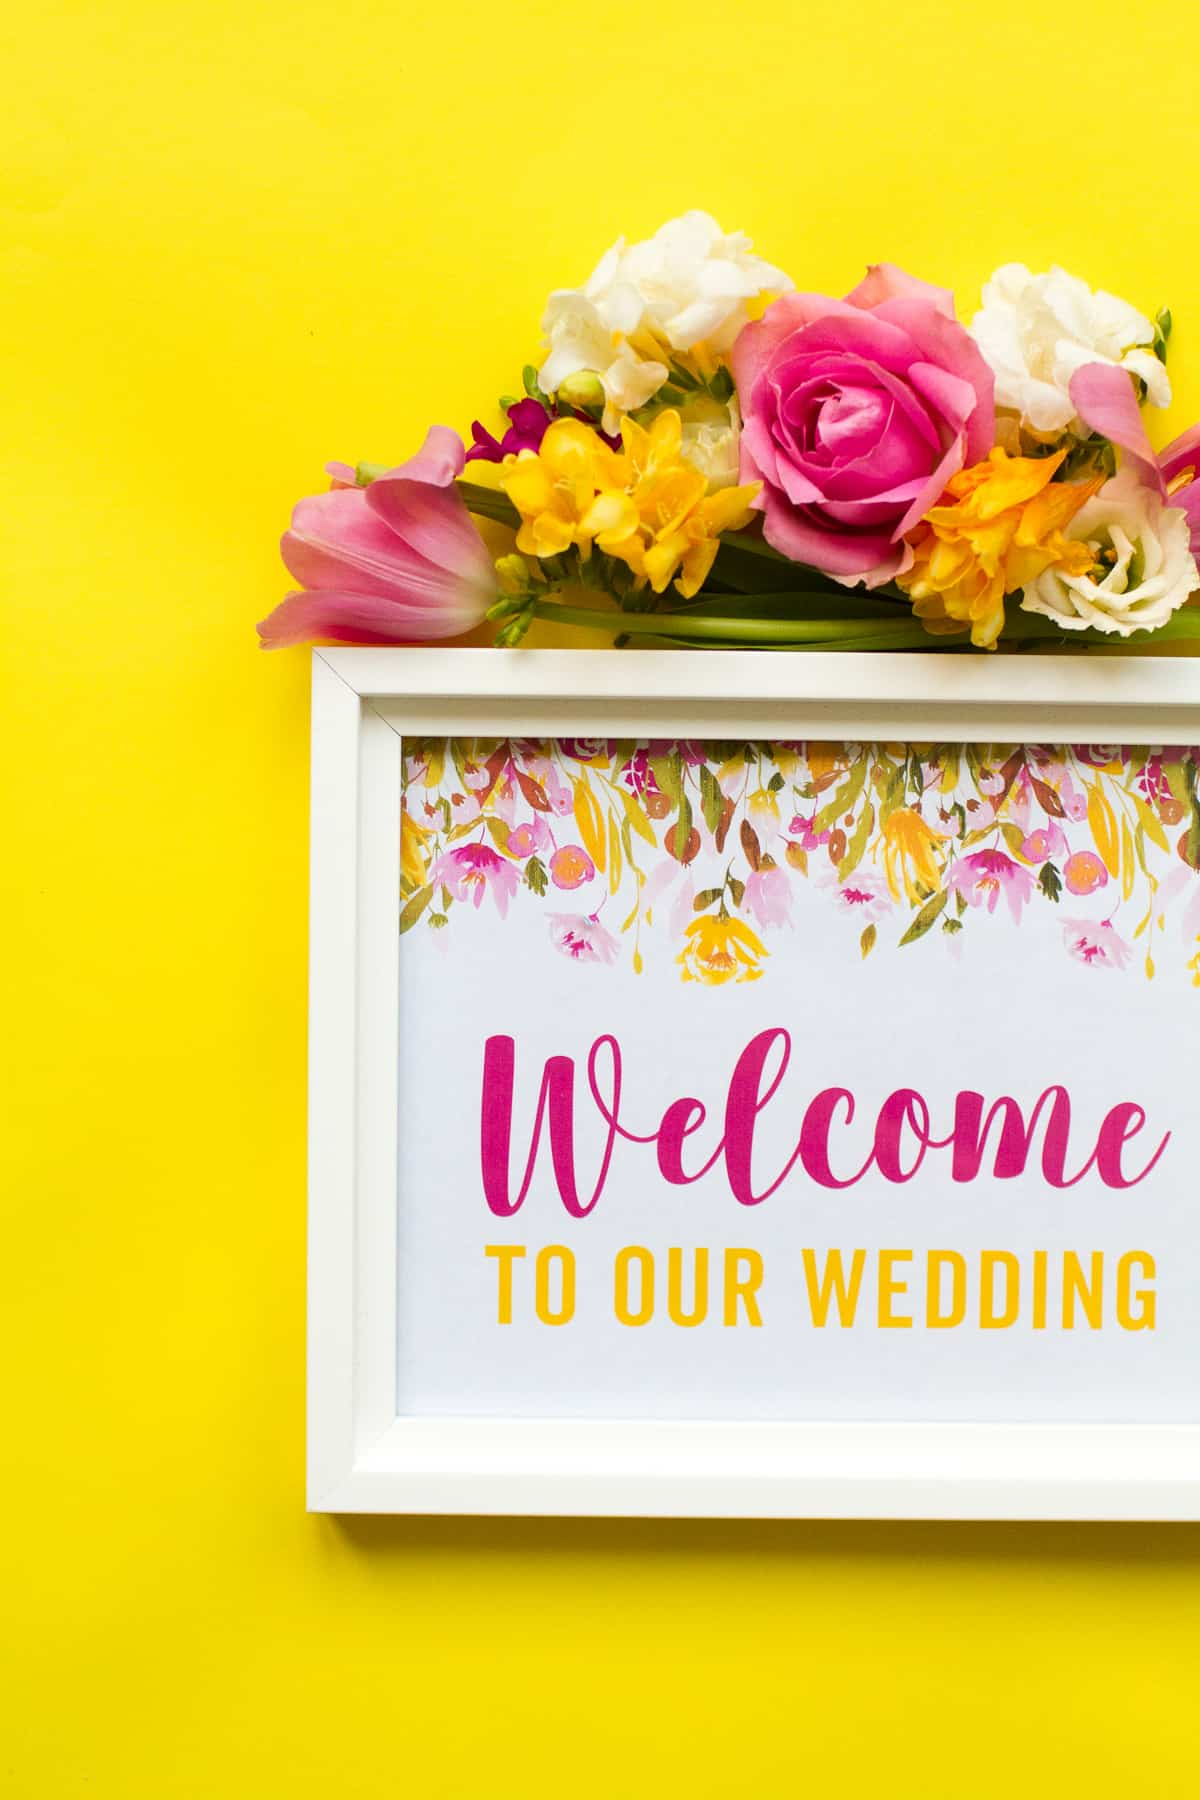 image regarding Free Printable Welcome Sign known as Totally free PRINTABLE WELCOME Towards OUR Wedding ceremony Indicator SPRING FLORAL